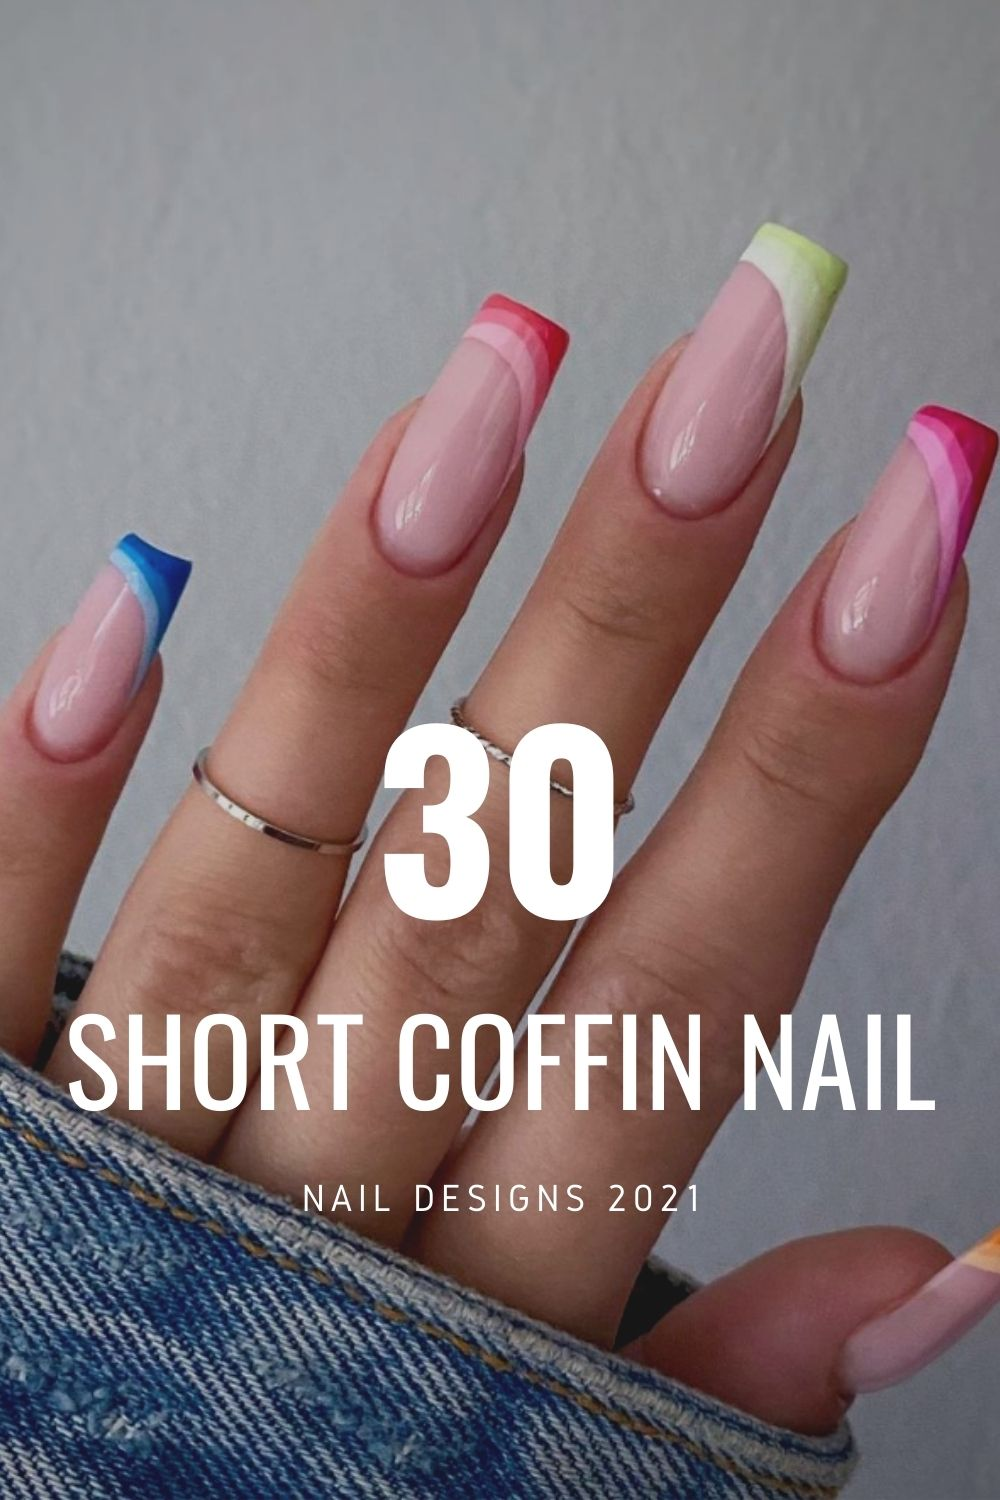 Sweet Candy Short Coffin Nails for Summer nails